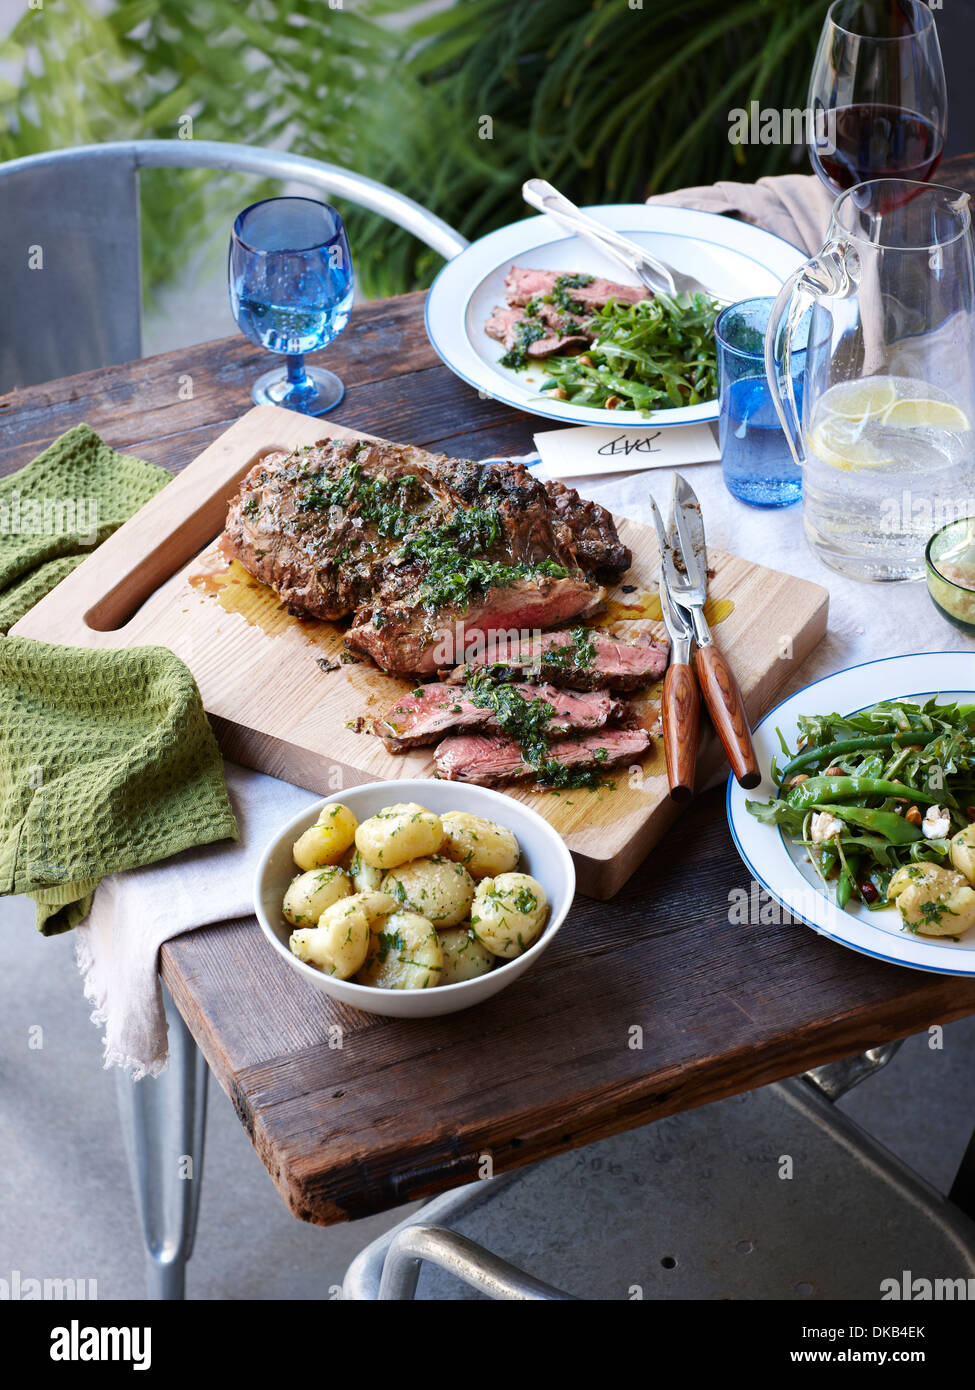 Dinner table with barbecued herb crust lamb and spring greens - Stock Image